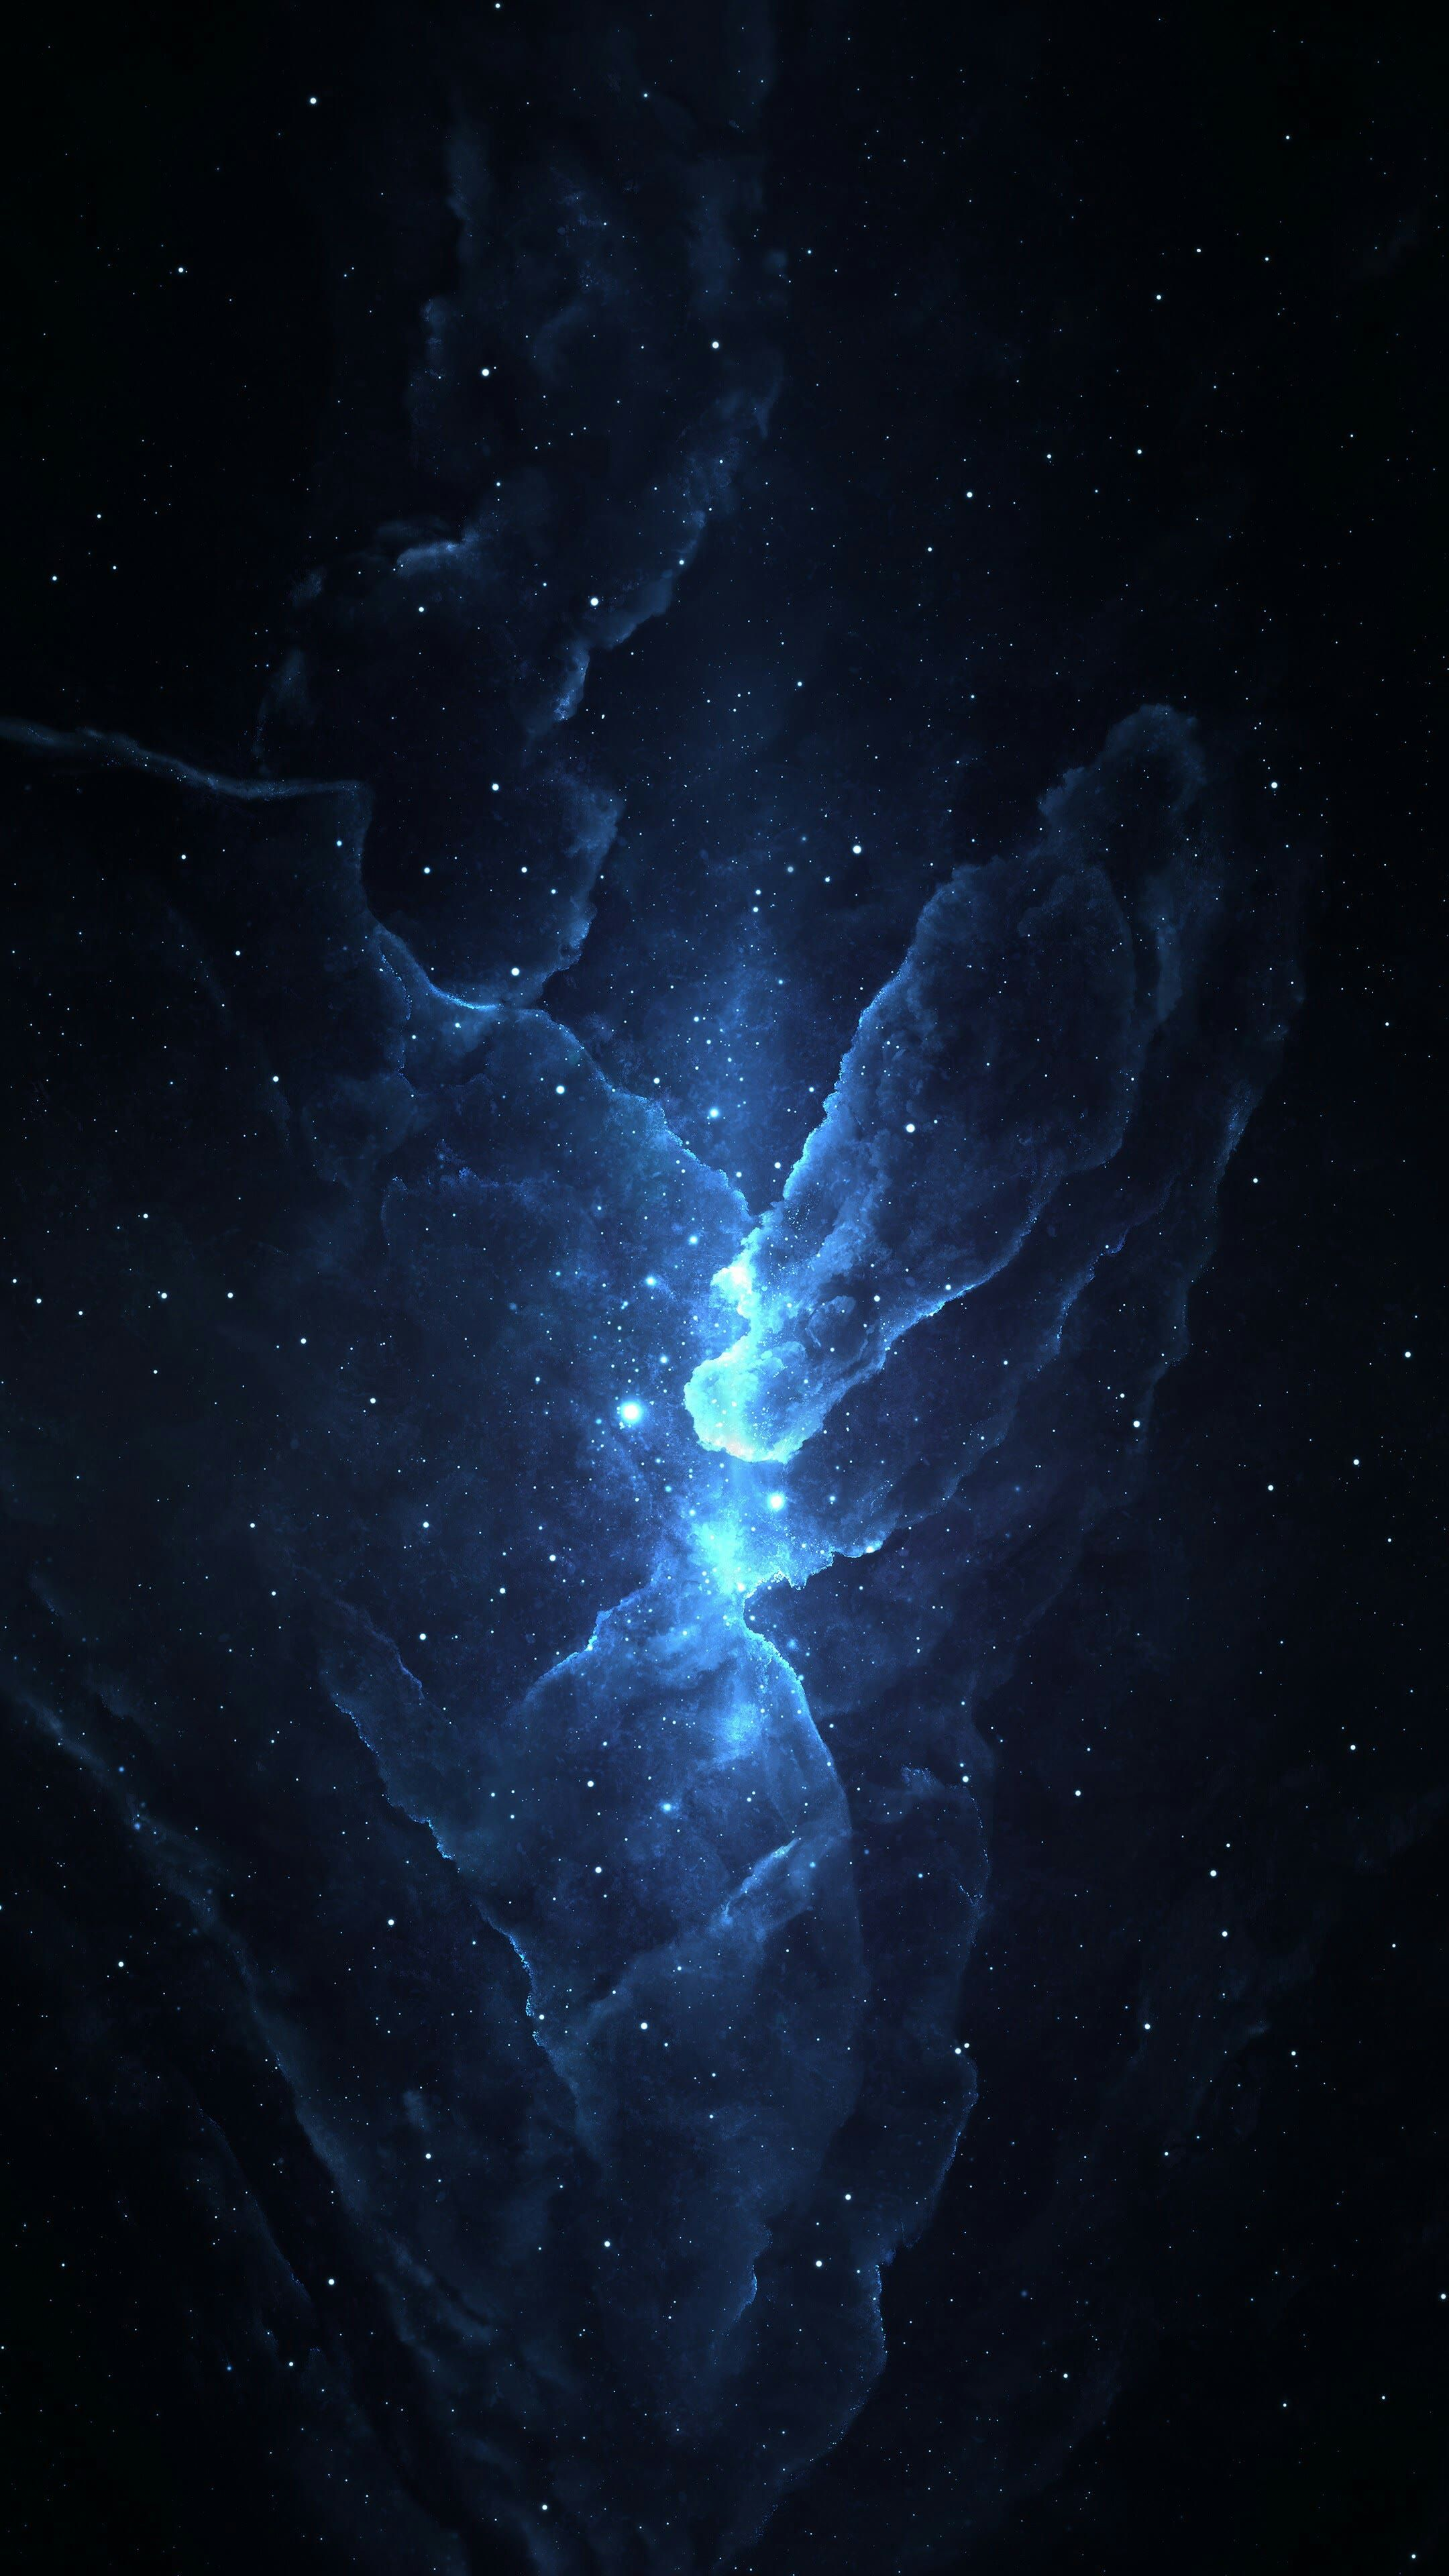 Iphone Space Hd Wallpapers For Mobile